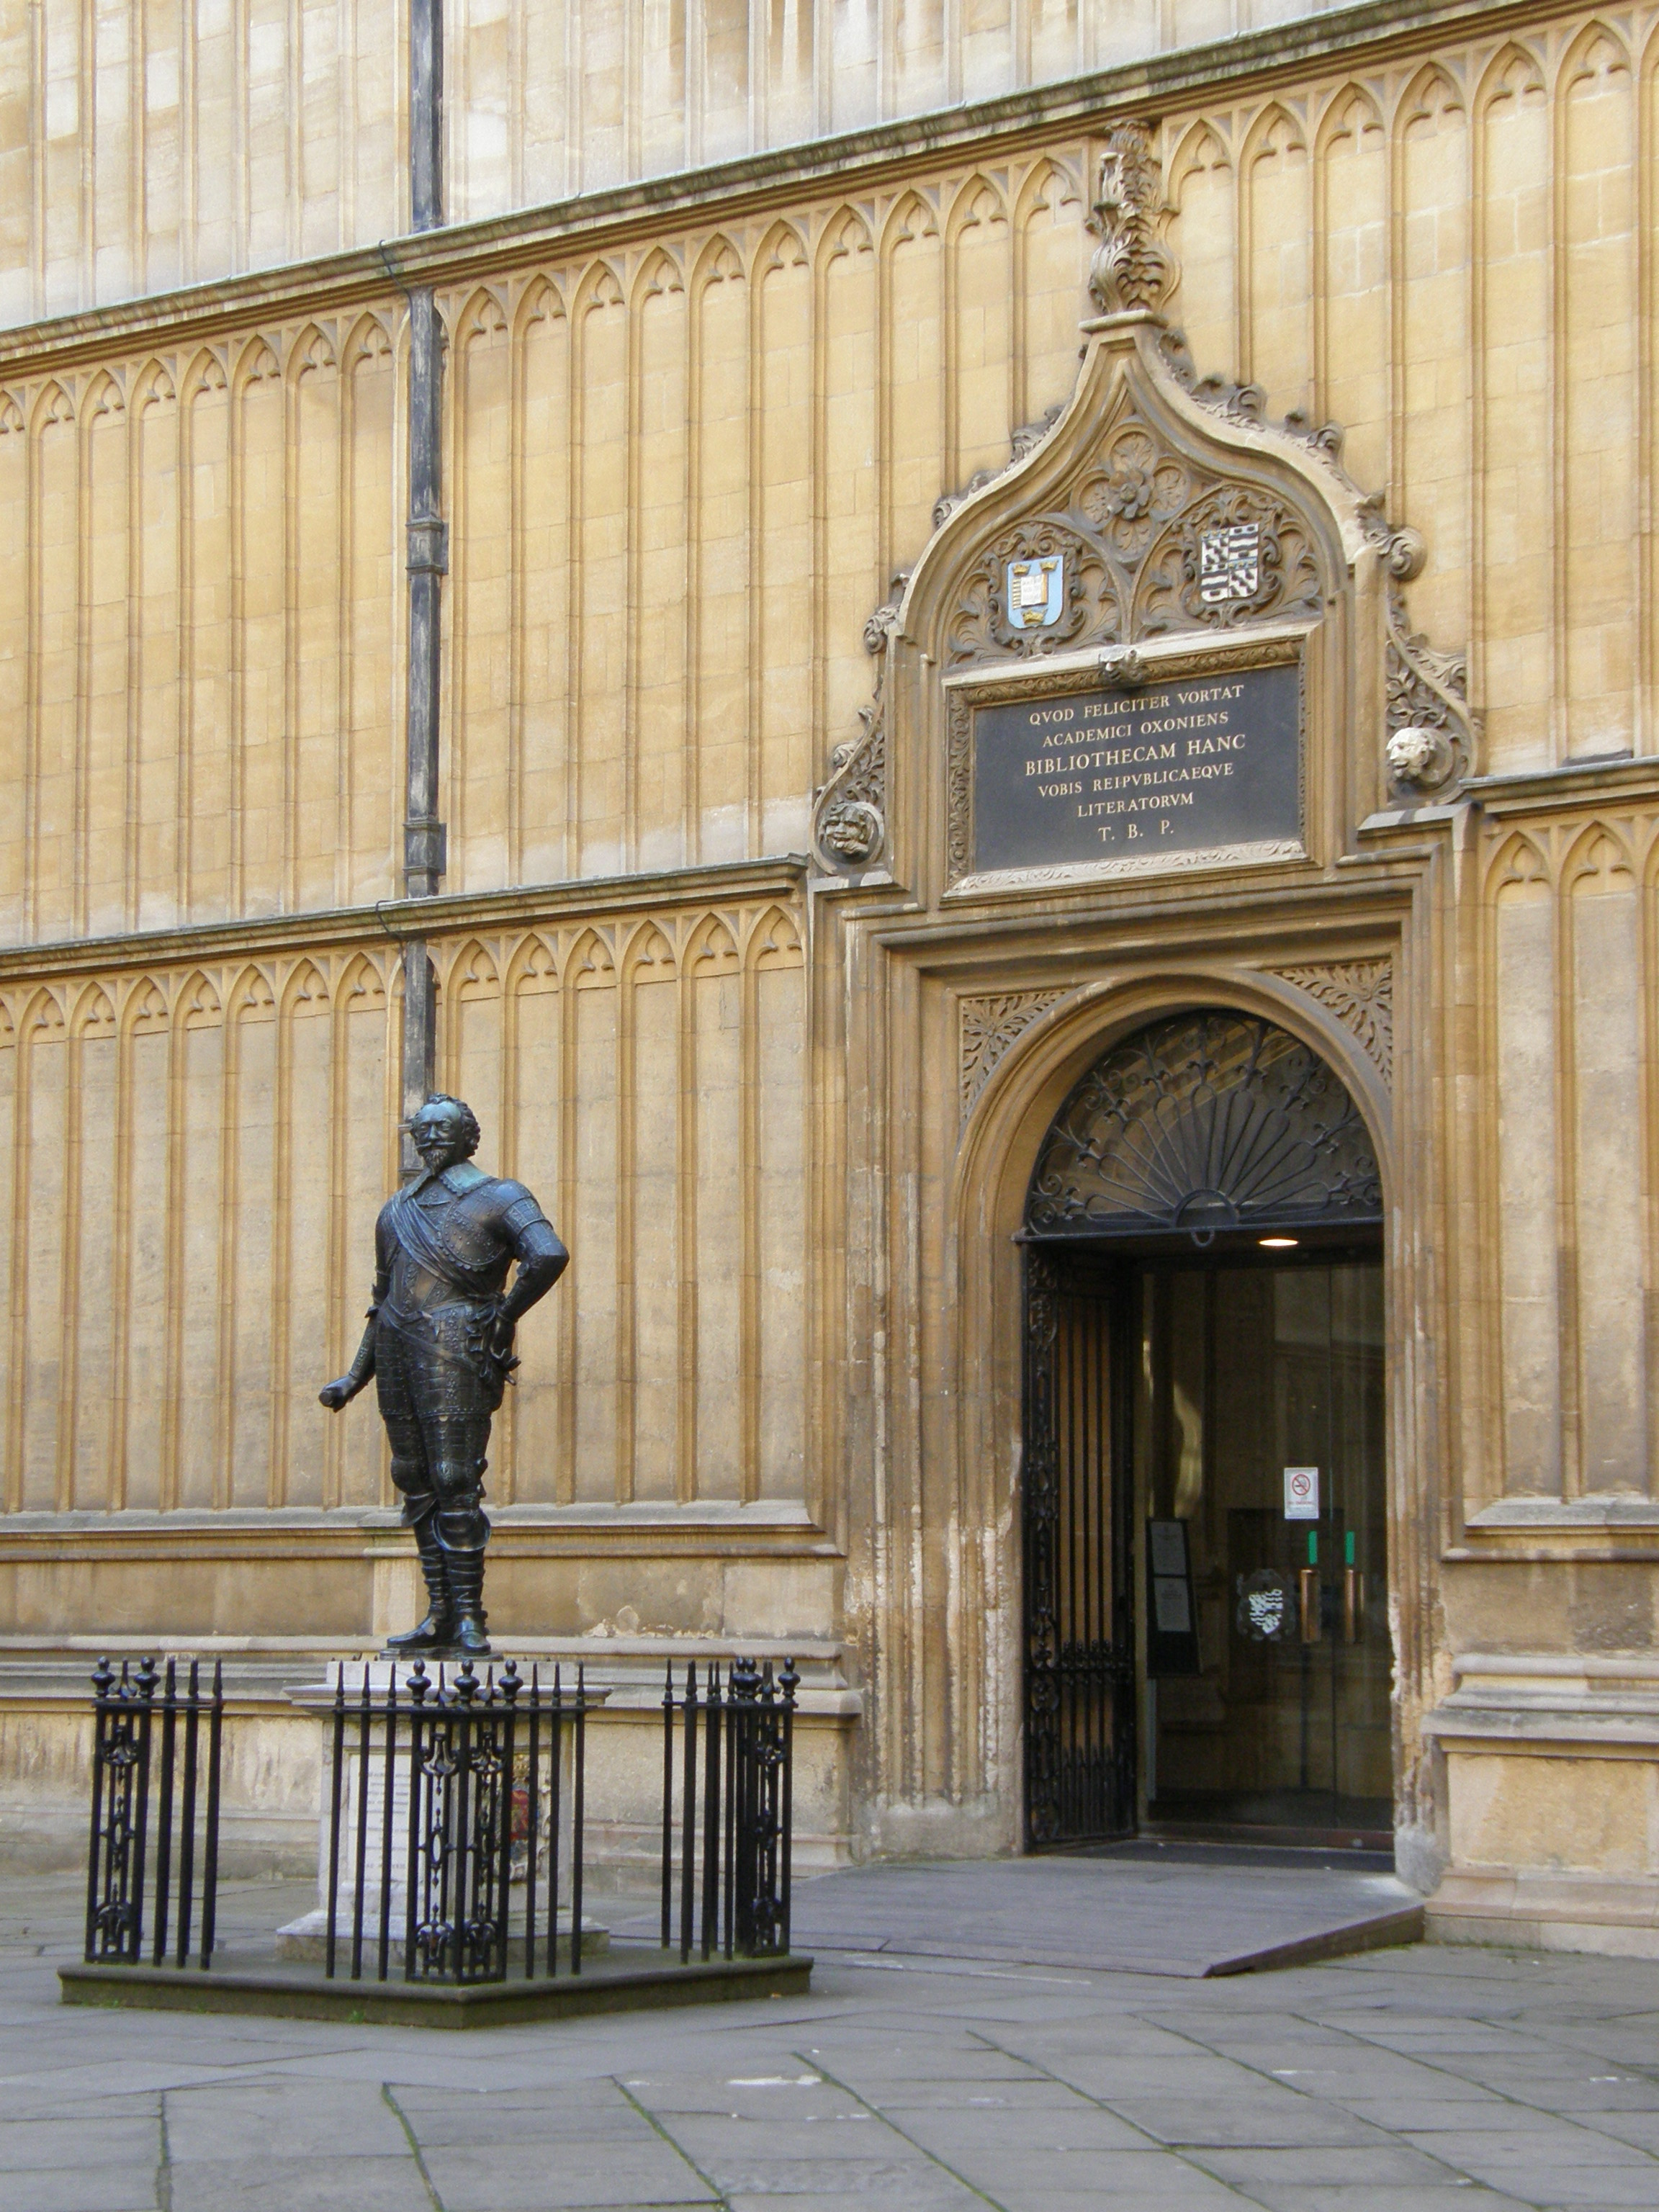 Old Bodleian Library entrance (c) Nick Cistone